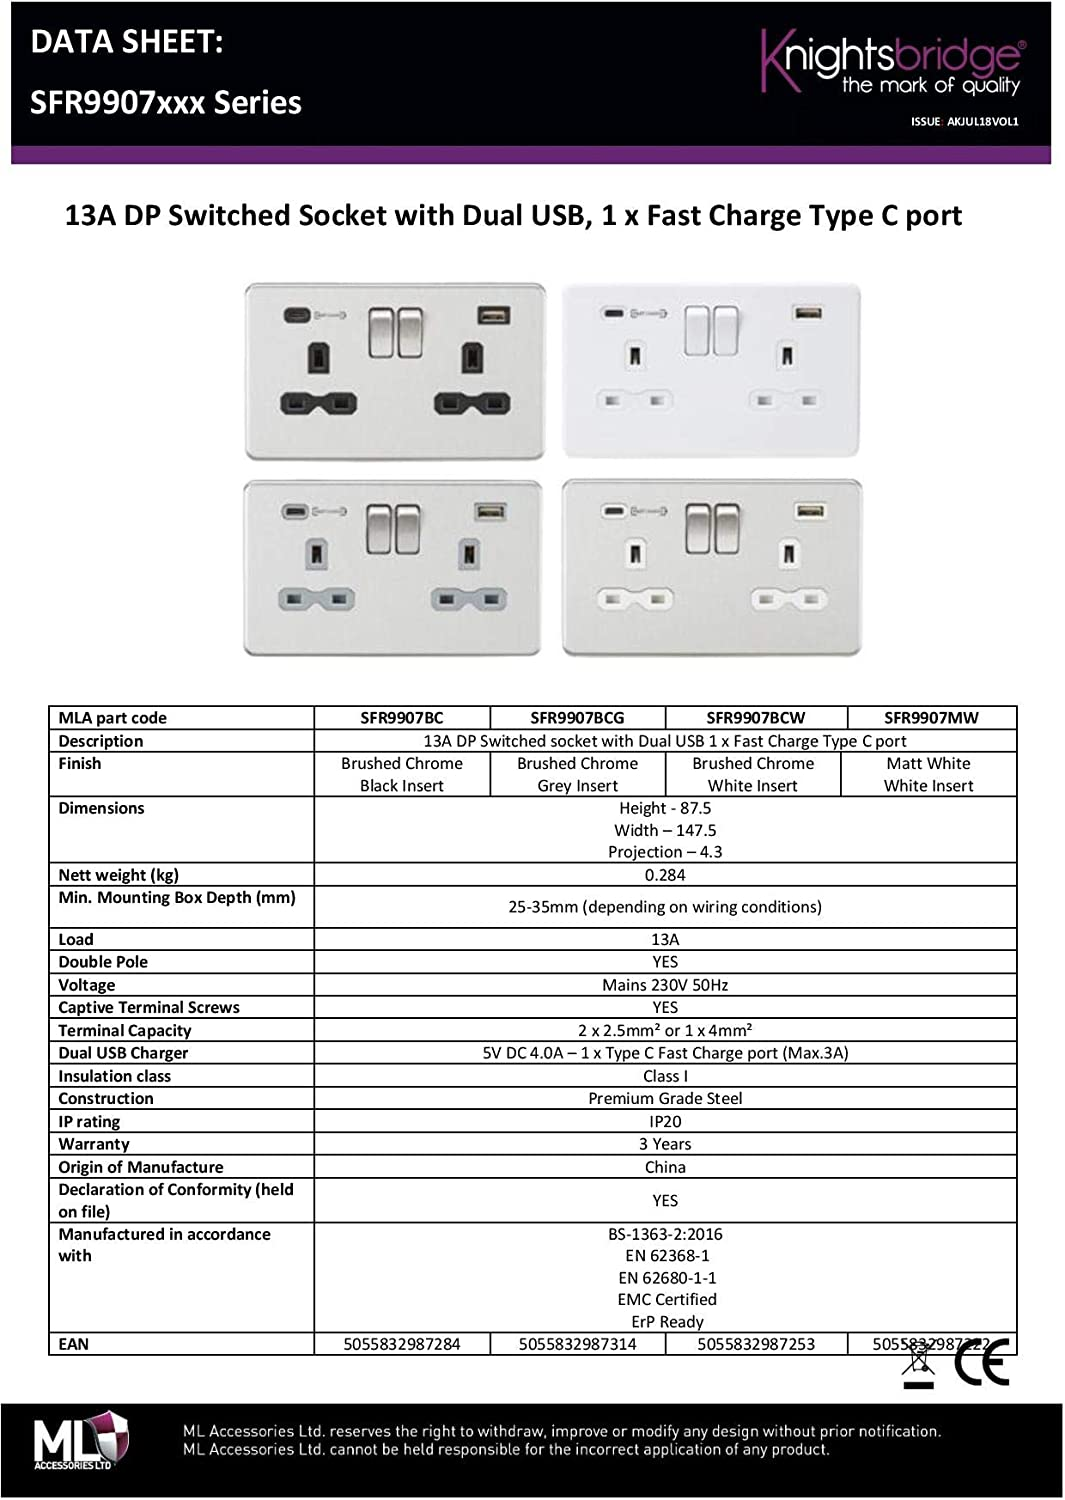 13A 2G DP Switched Socket with Dual USB Charger Type-C FASTCHARGE Brushed Chrome